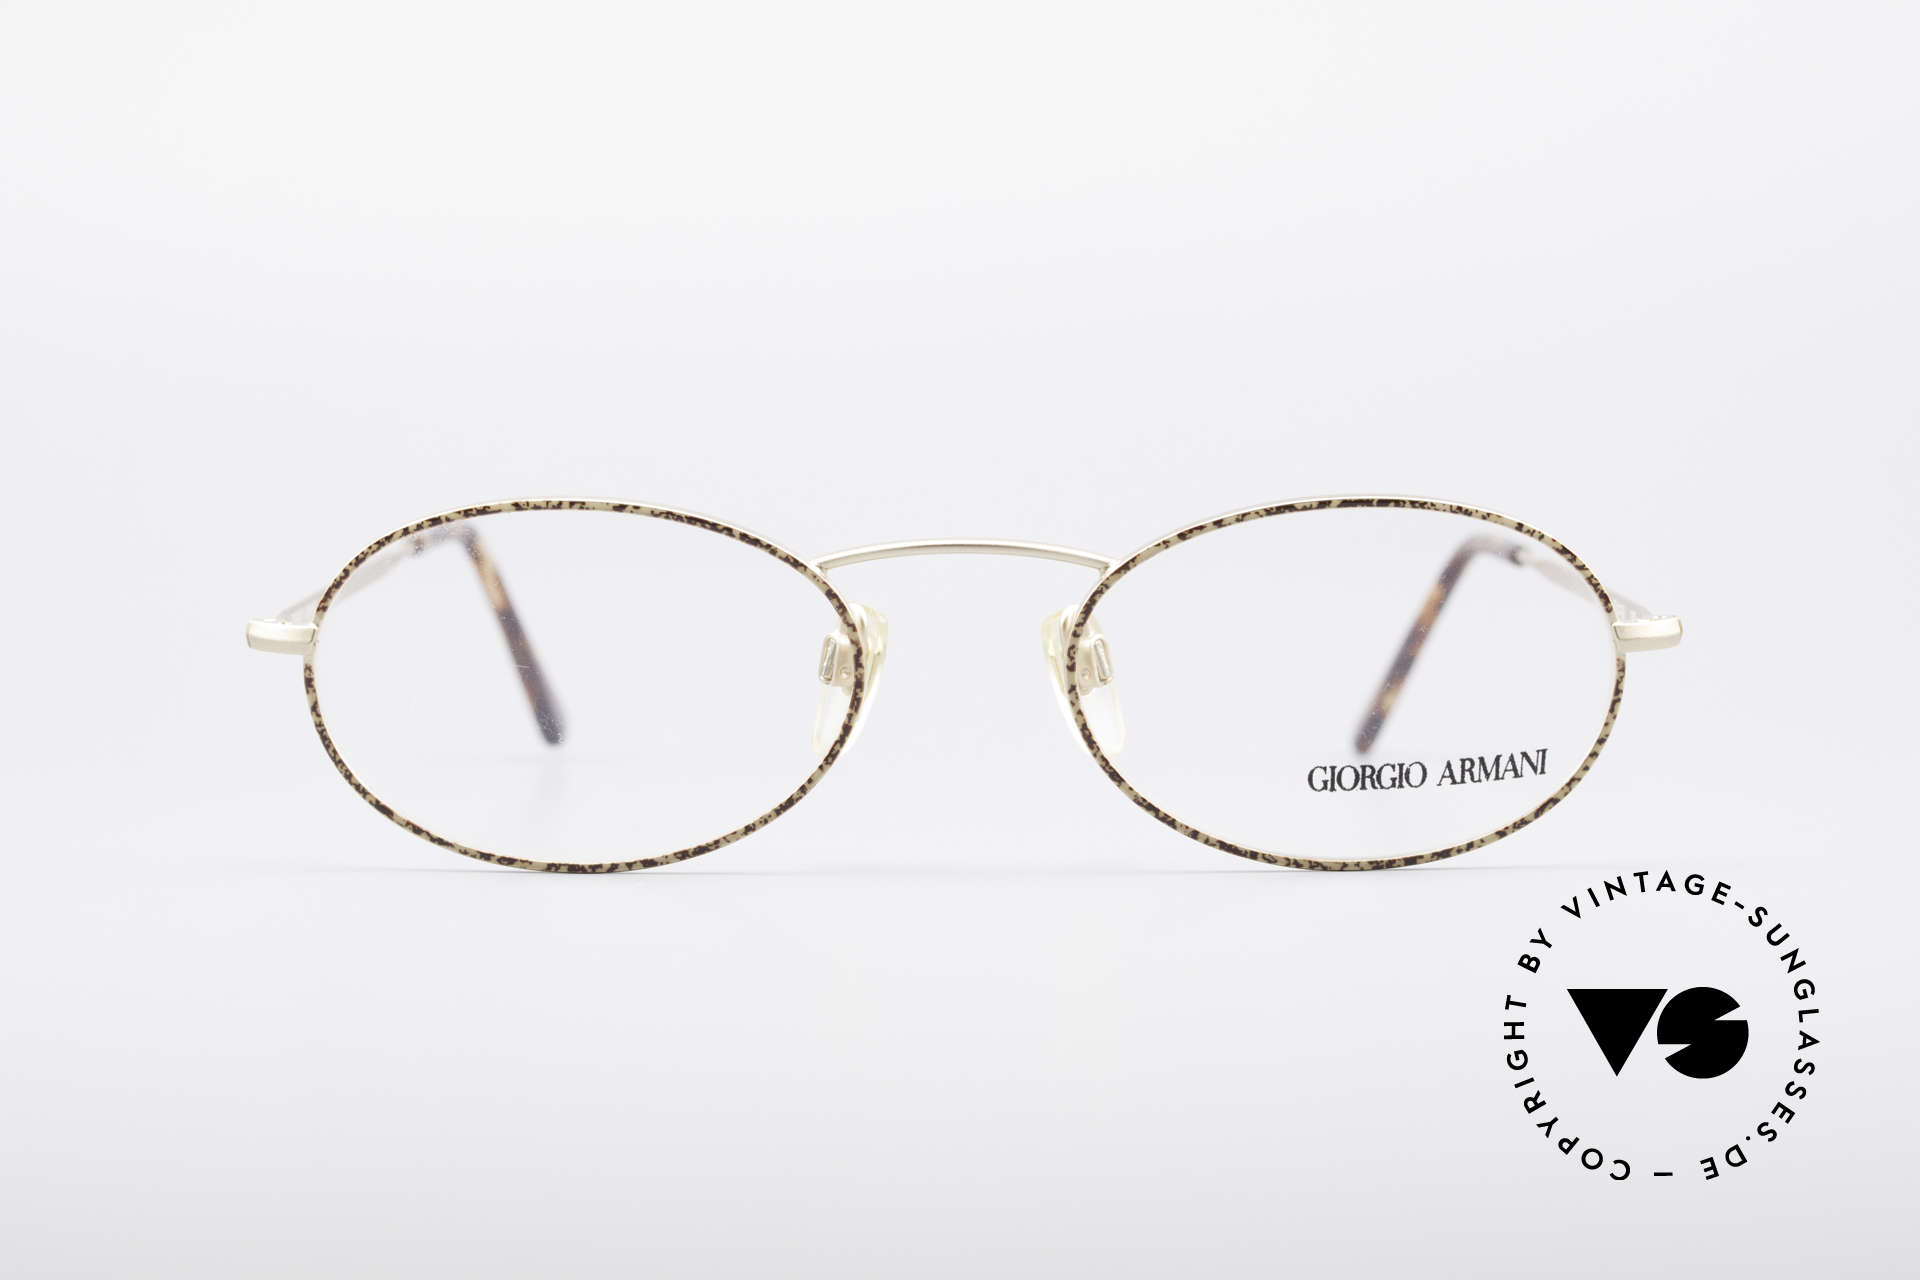 Giorgio Armani 125 Oval Vintage Frame, discreet oval metal frame in tangible top-quality, Made for Men and Women